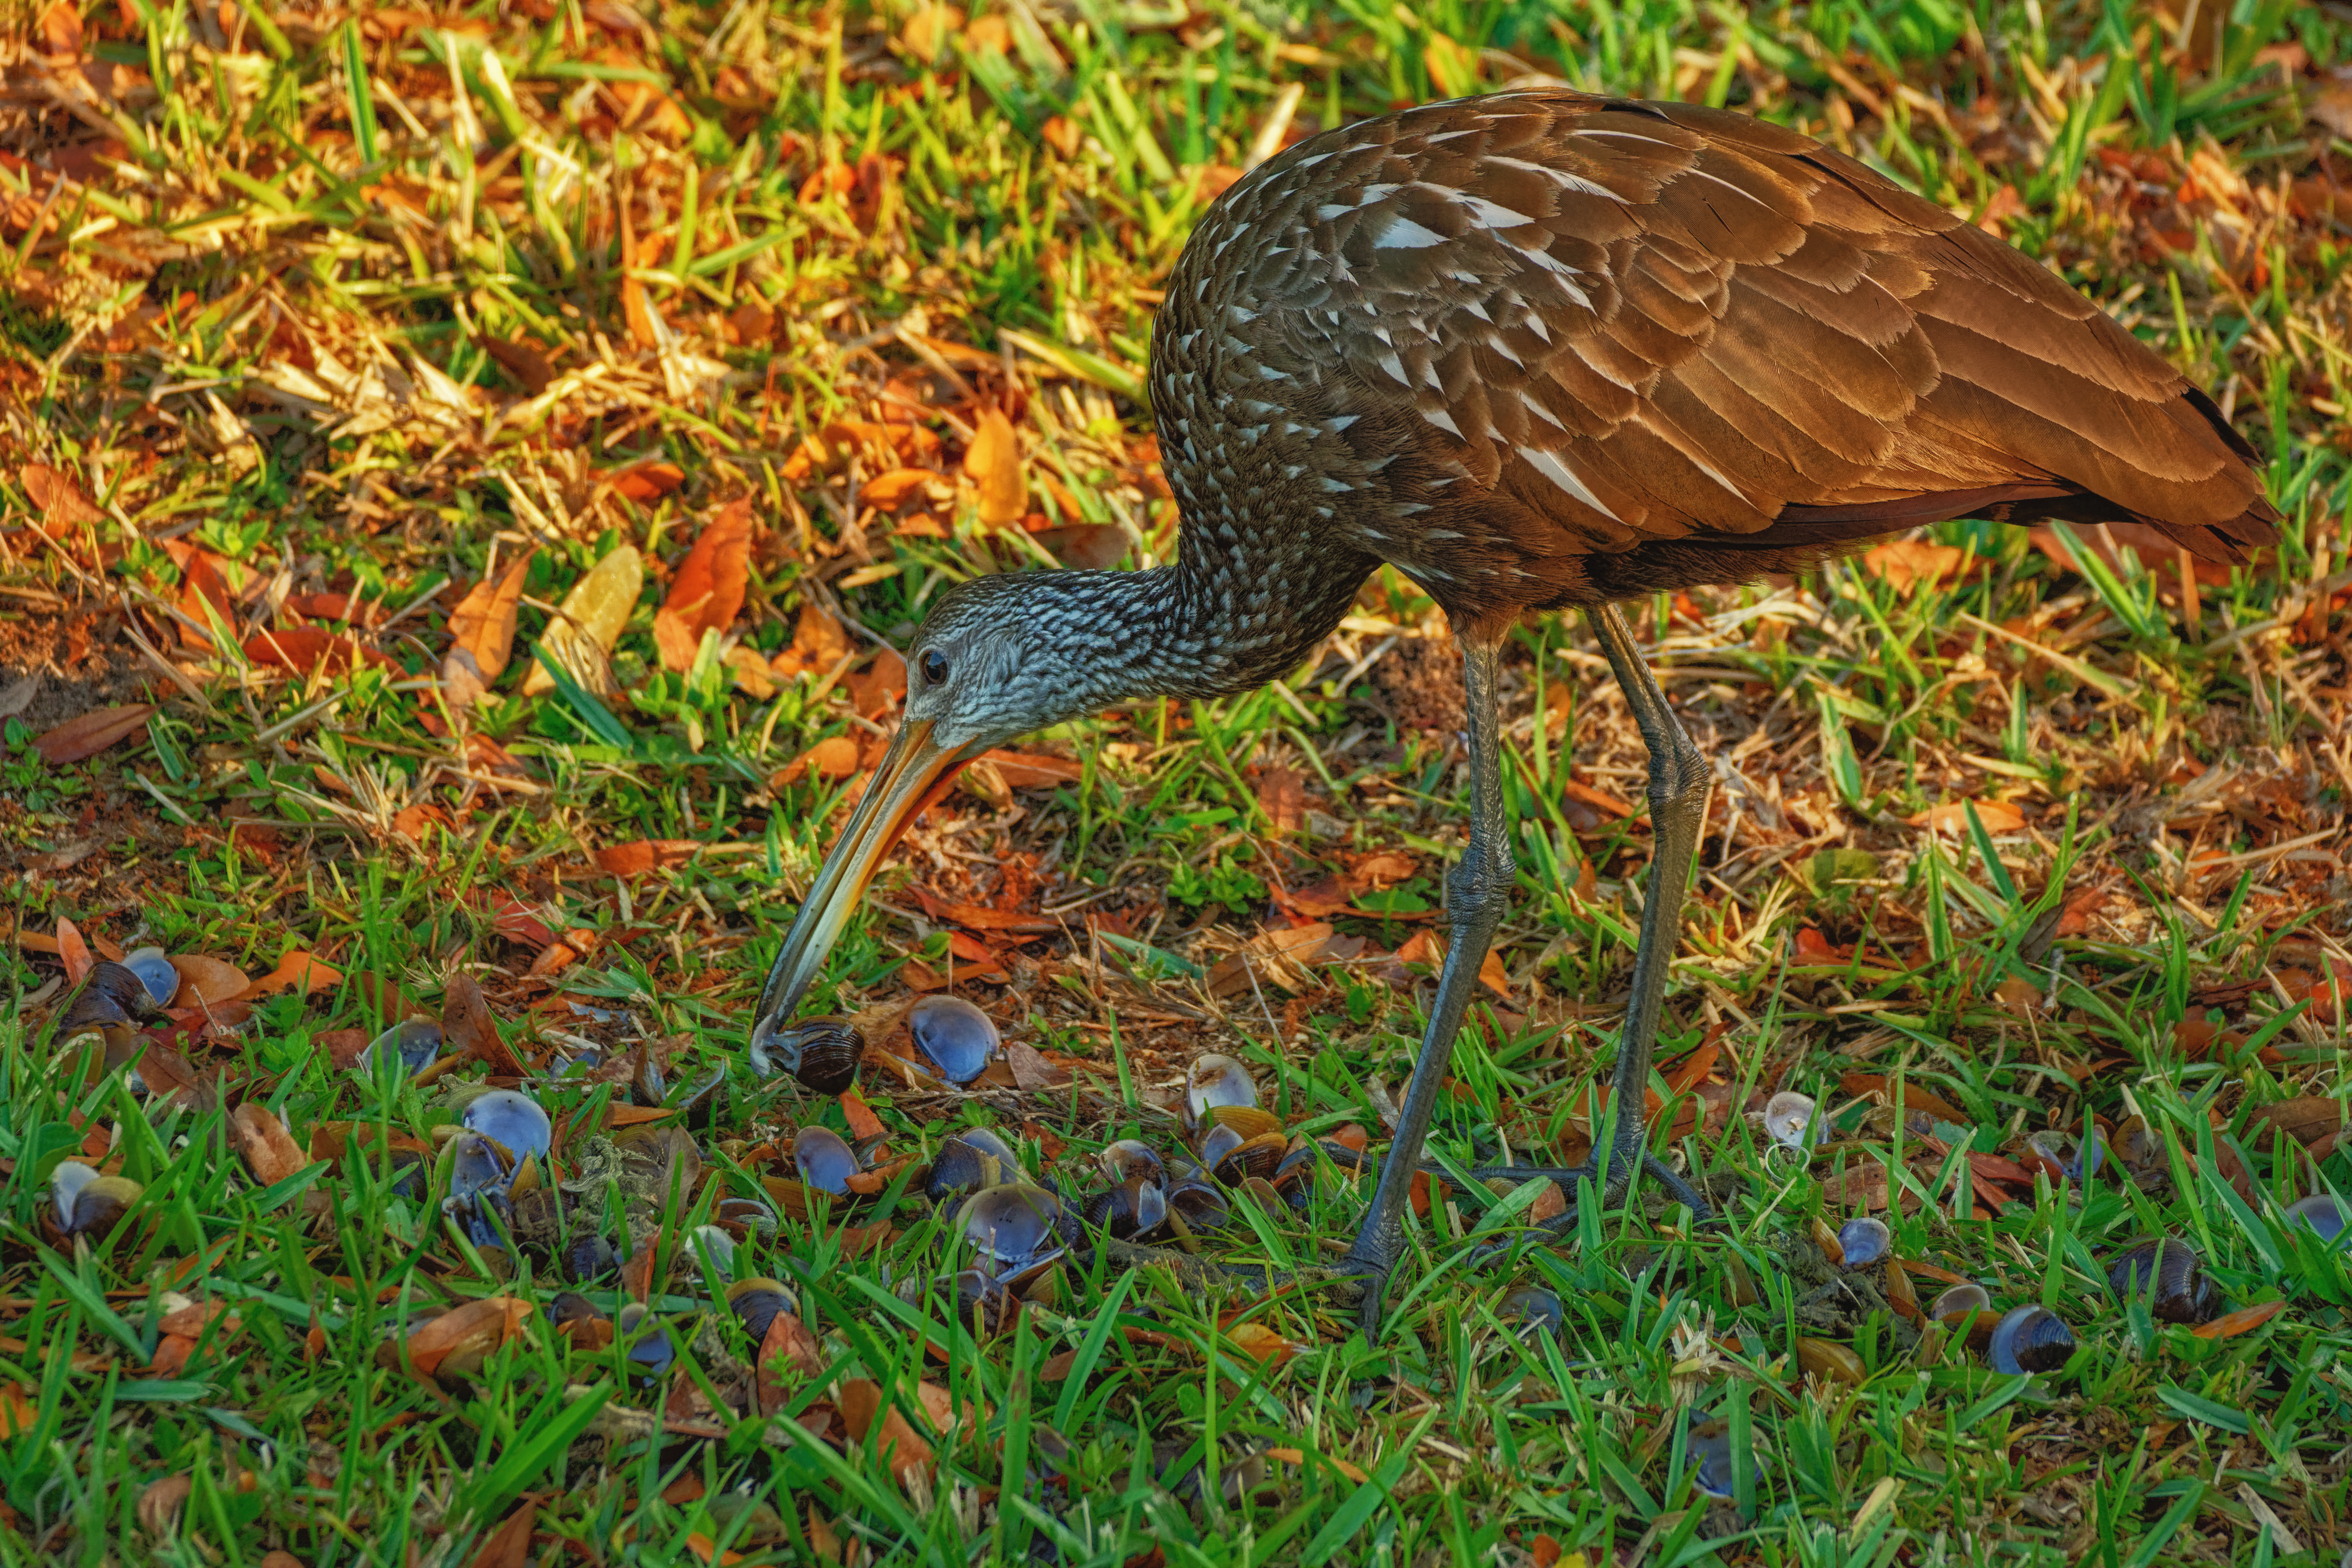 Limpkin Eats from Shells on the Bank - 1957